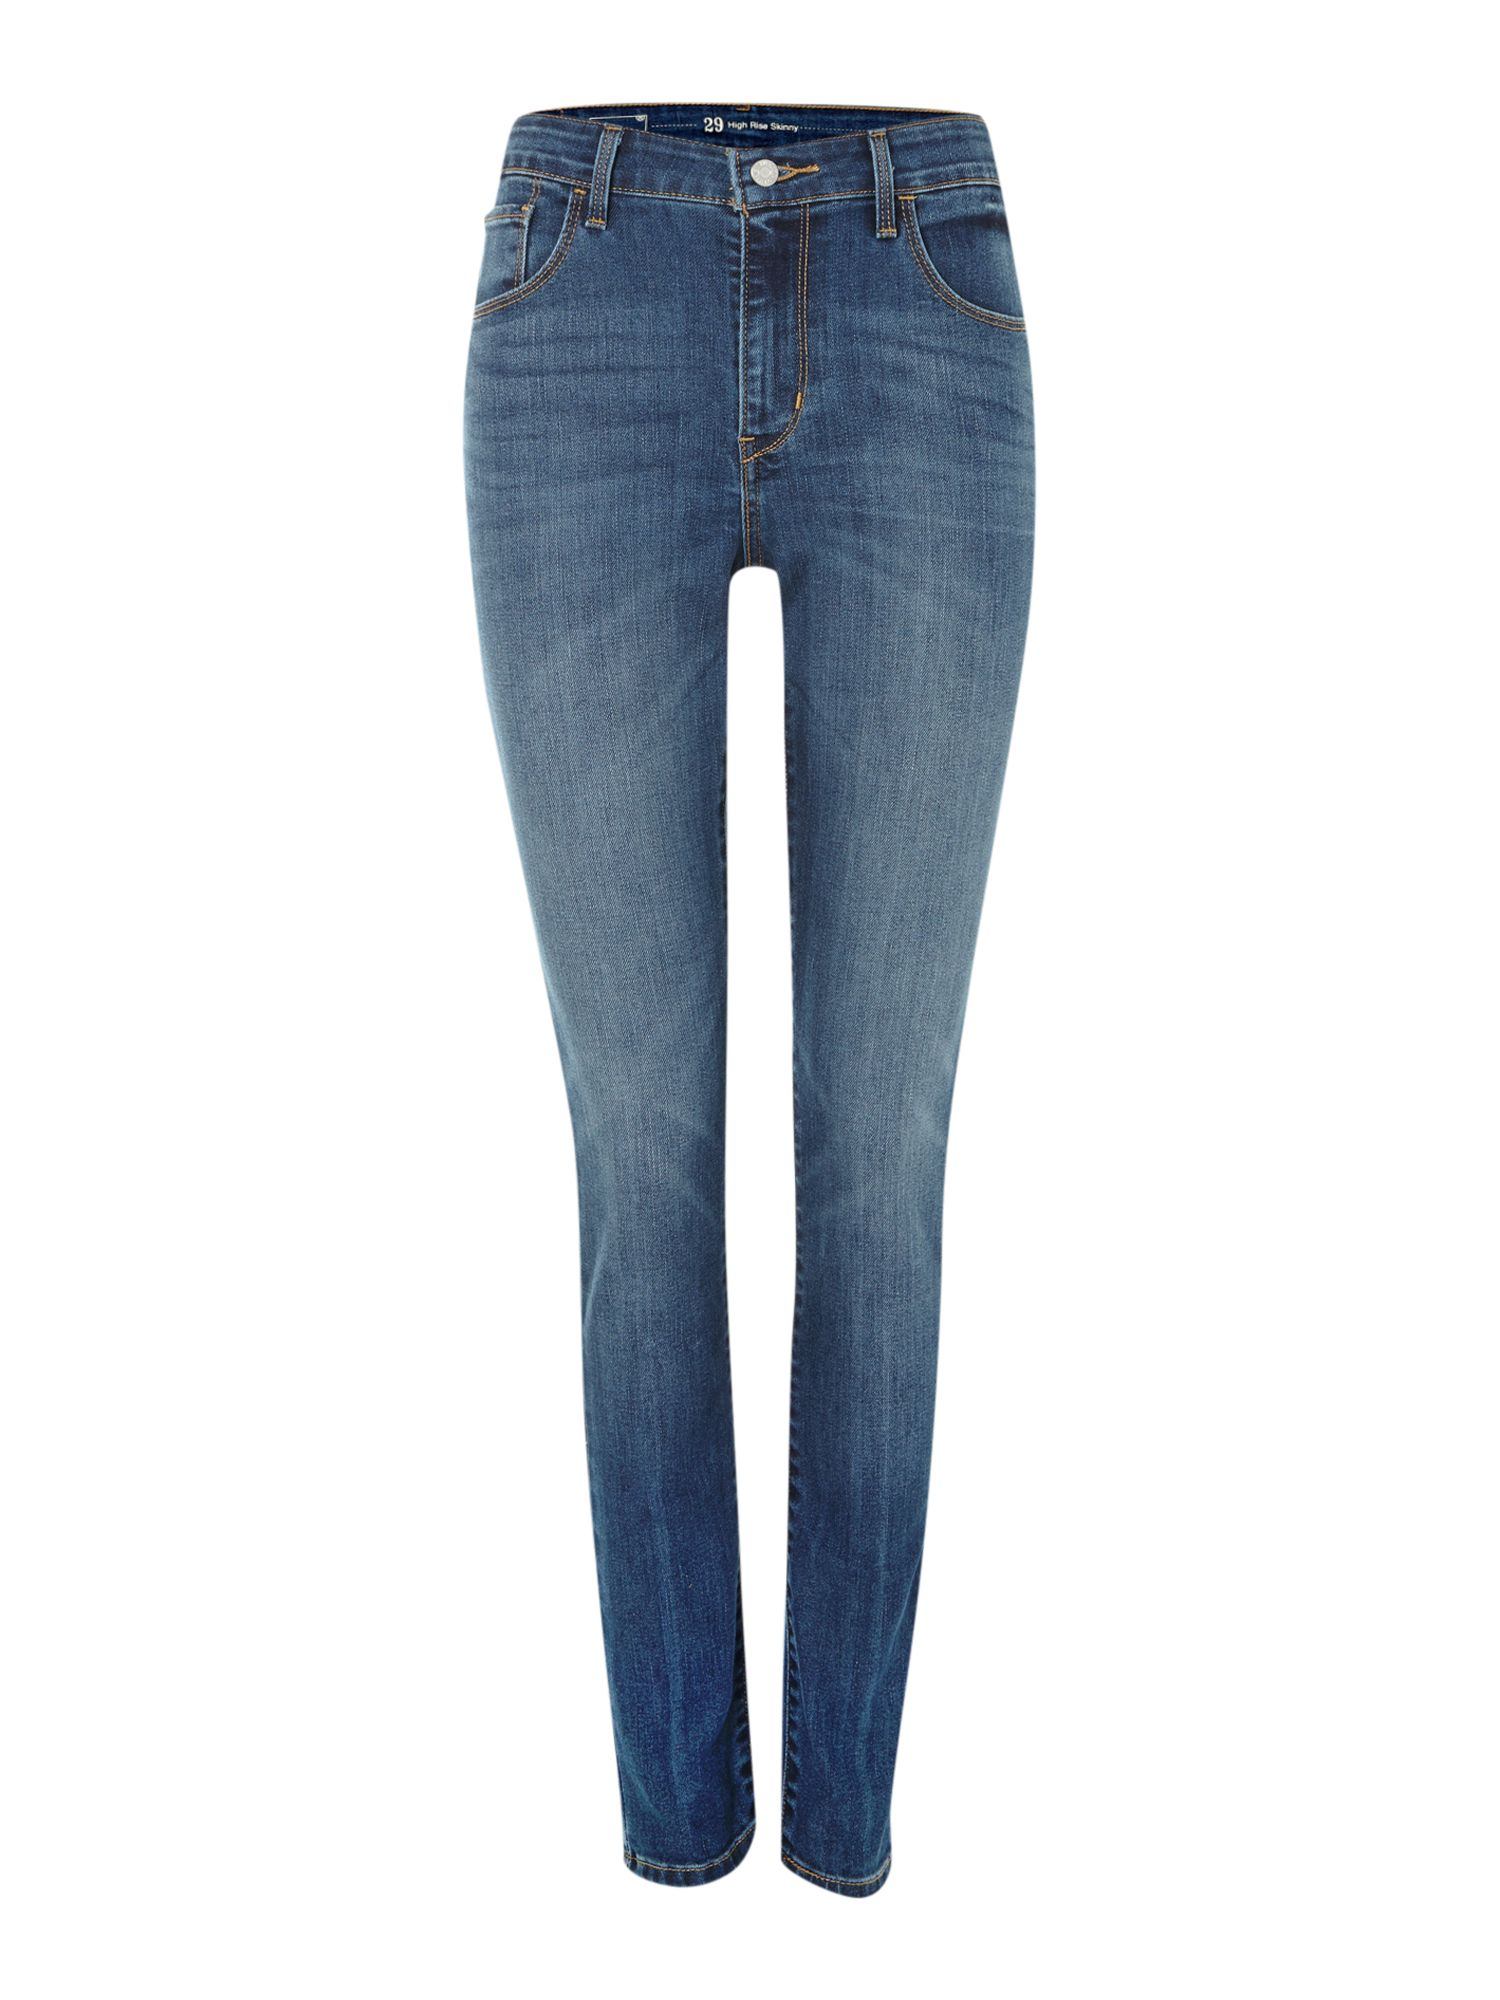 High rise skinny jeans in Blue Lagoon